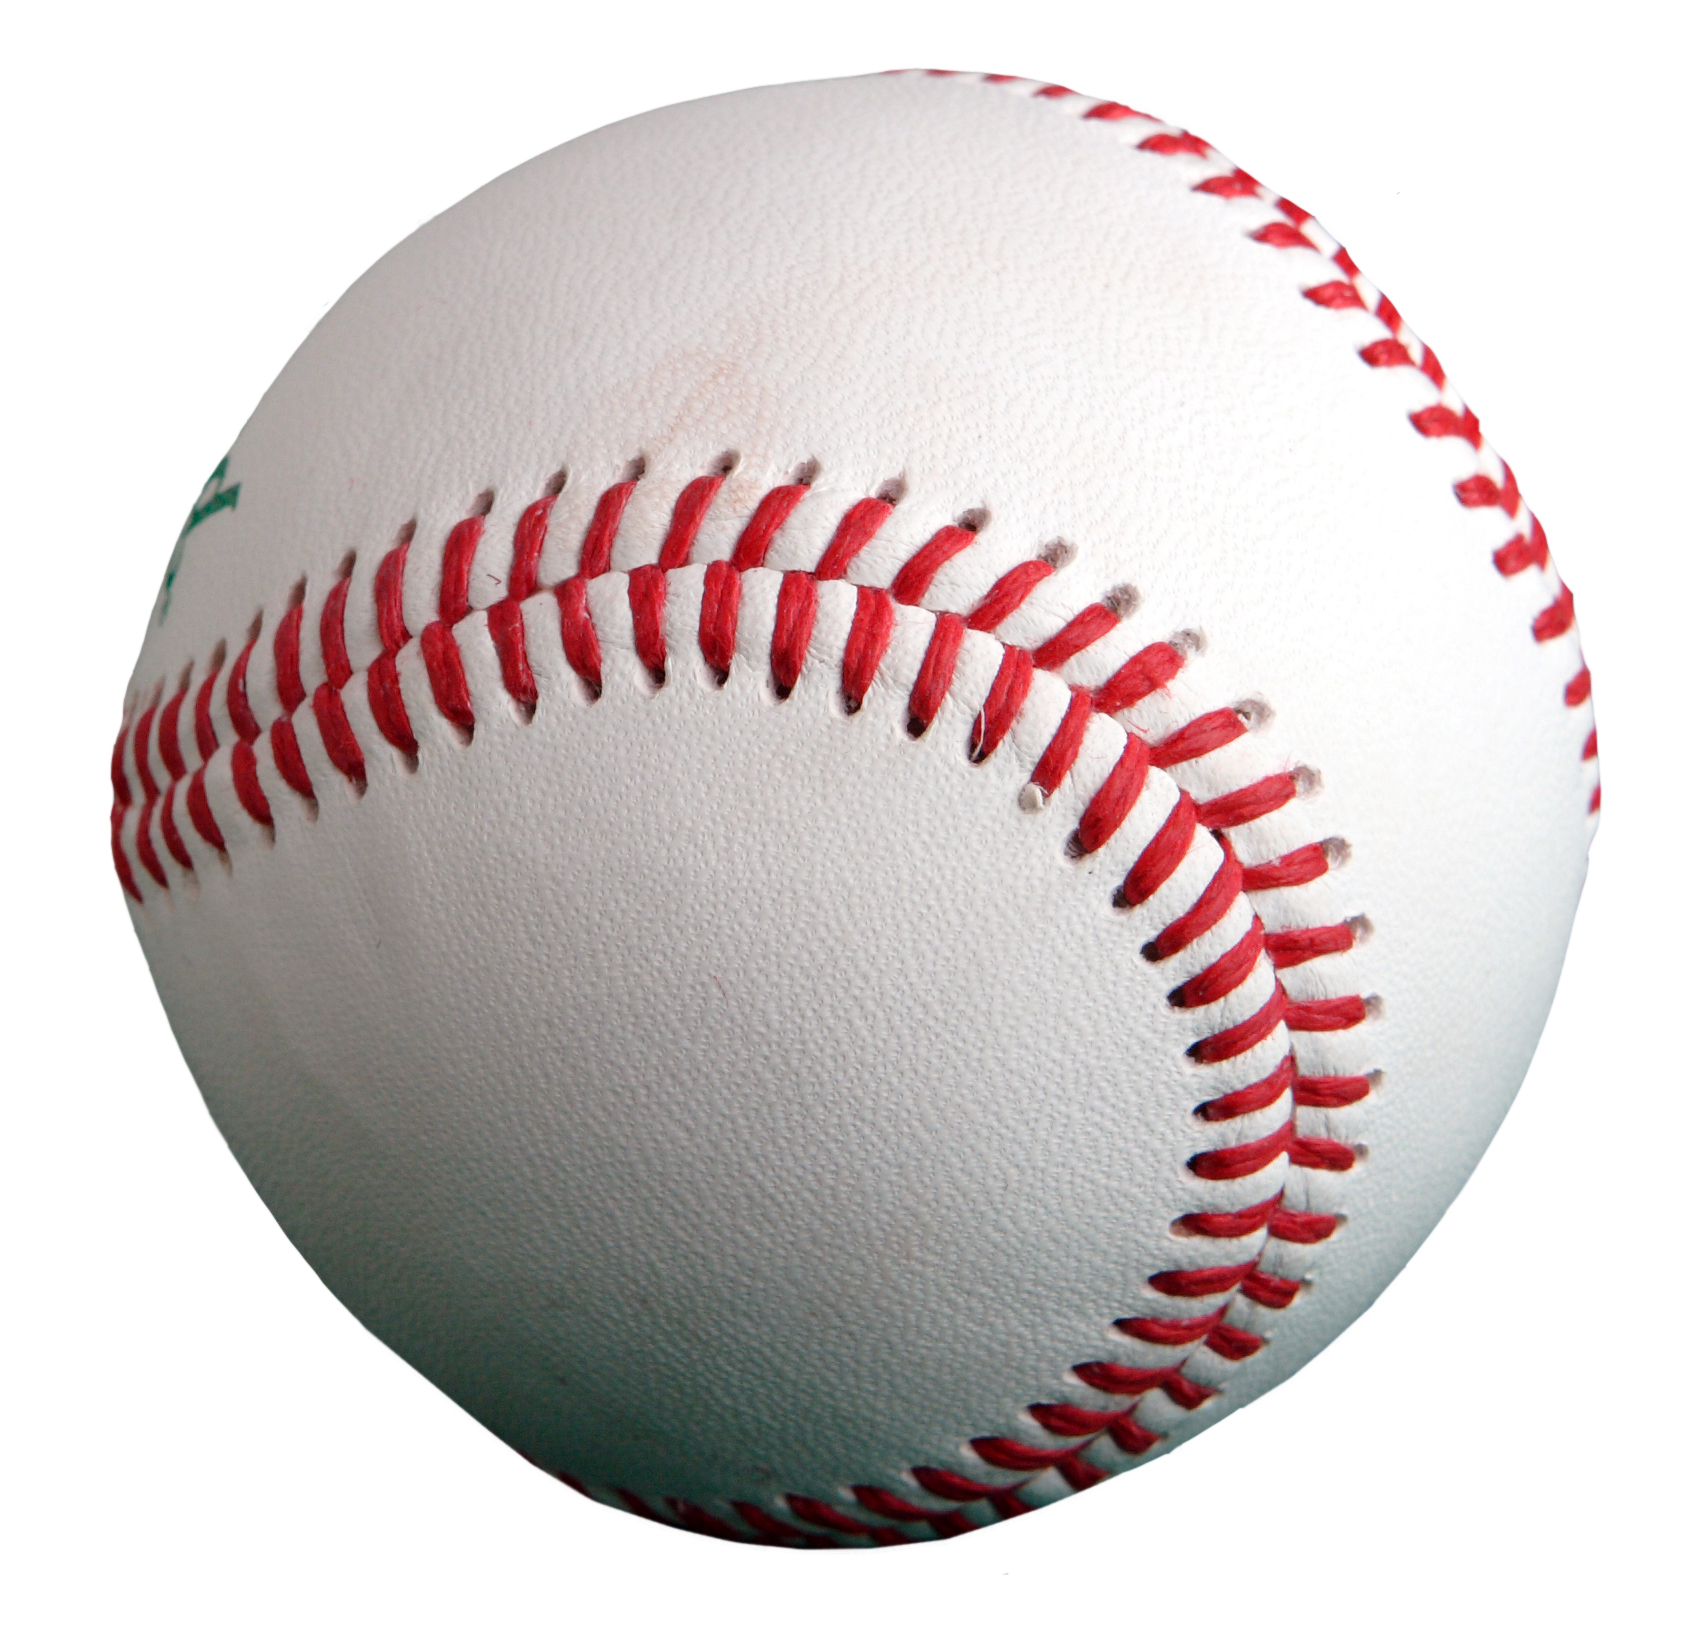 Technically all baseballs are the same size